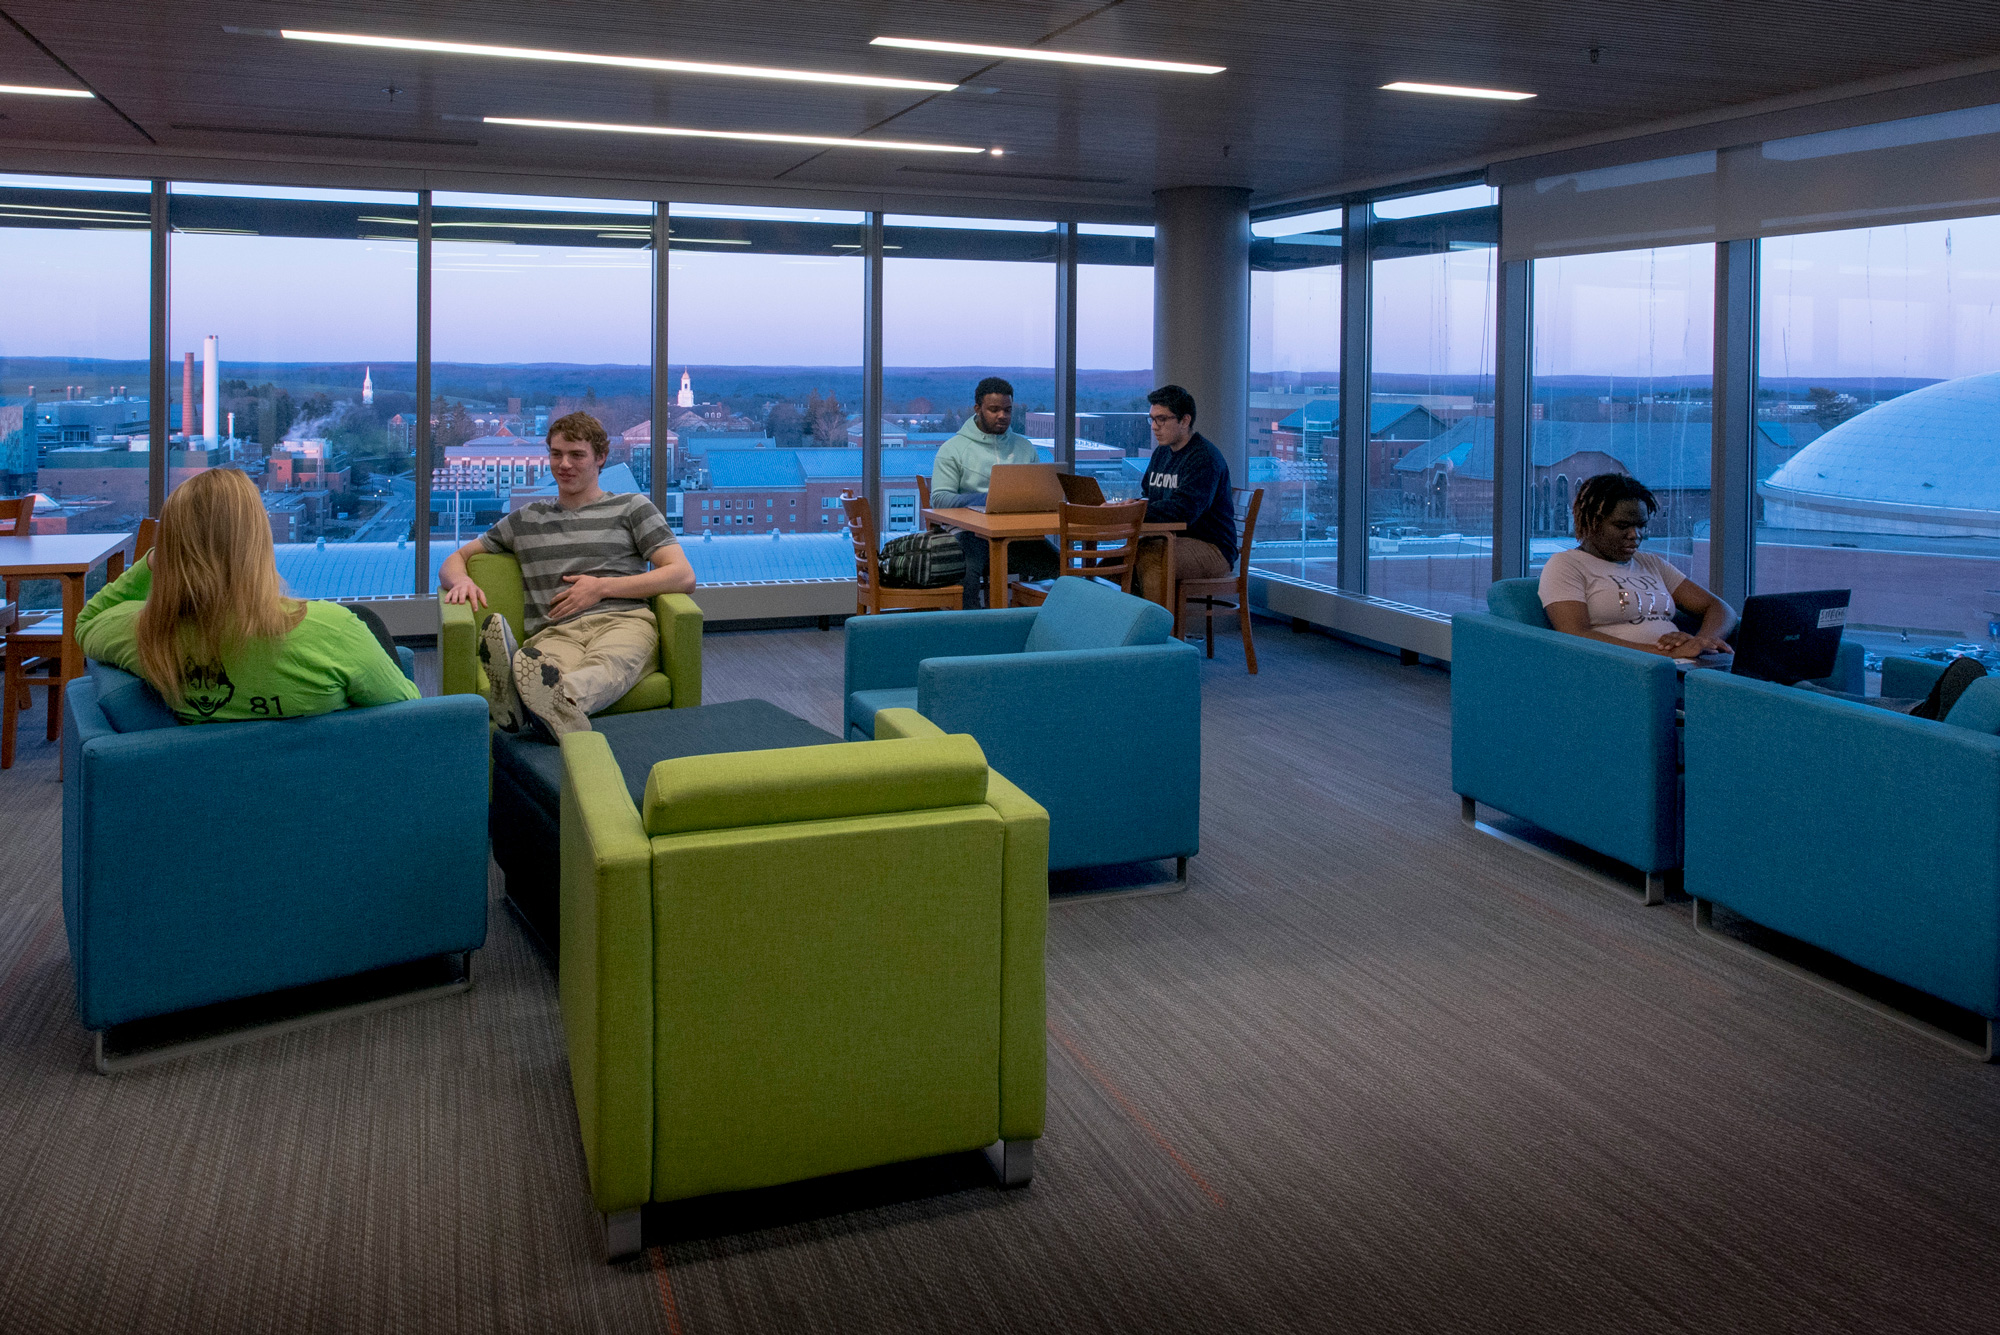 Students studying and hanging out in a study lounge of the Next Generation Connecticut Hall